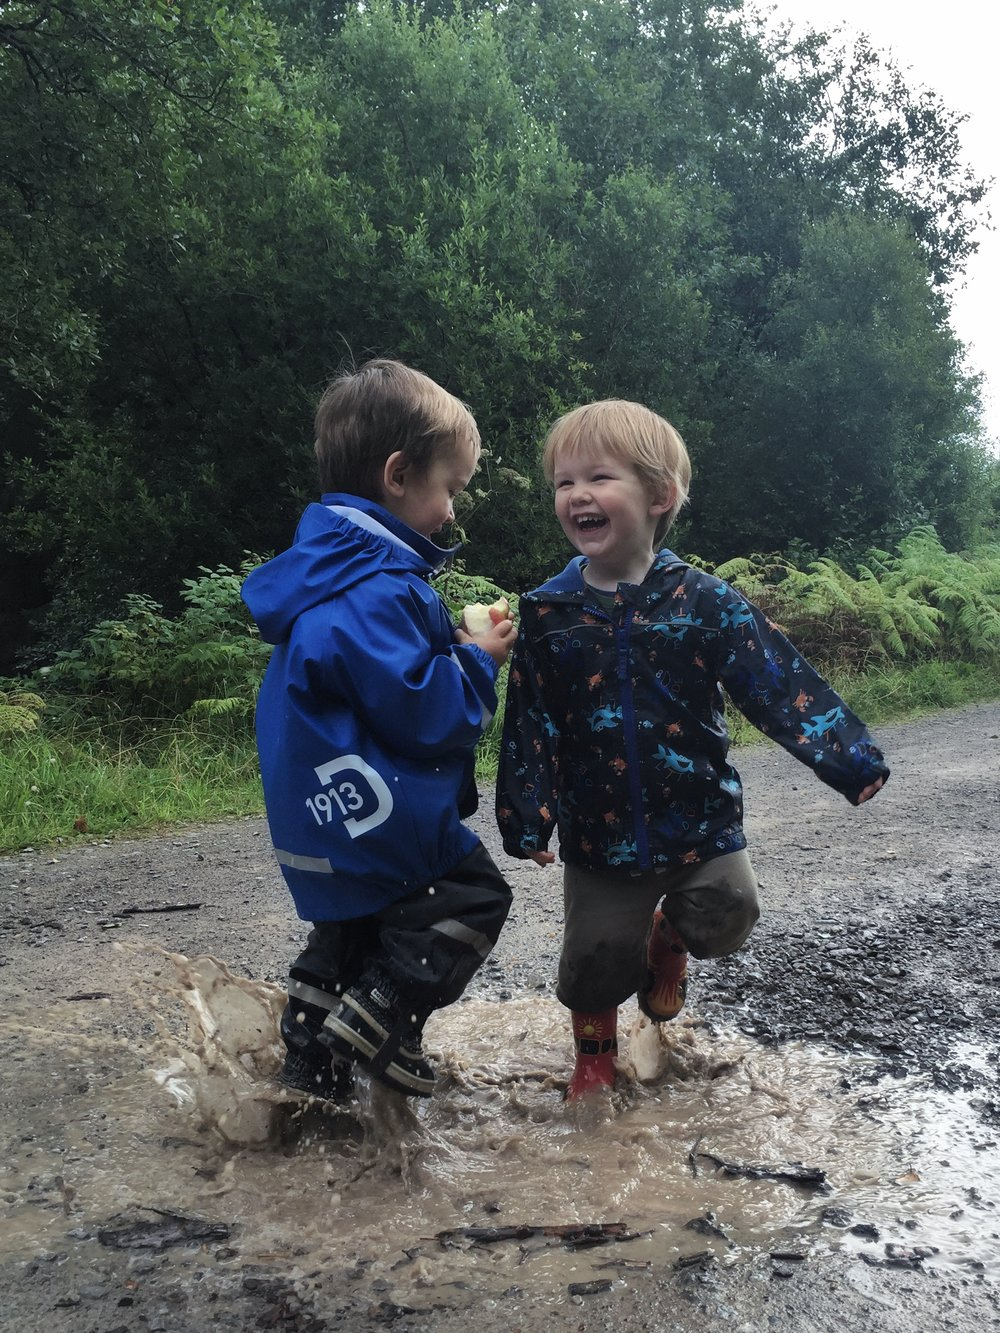 Two little boys splashing in a puddle.